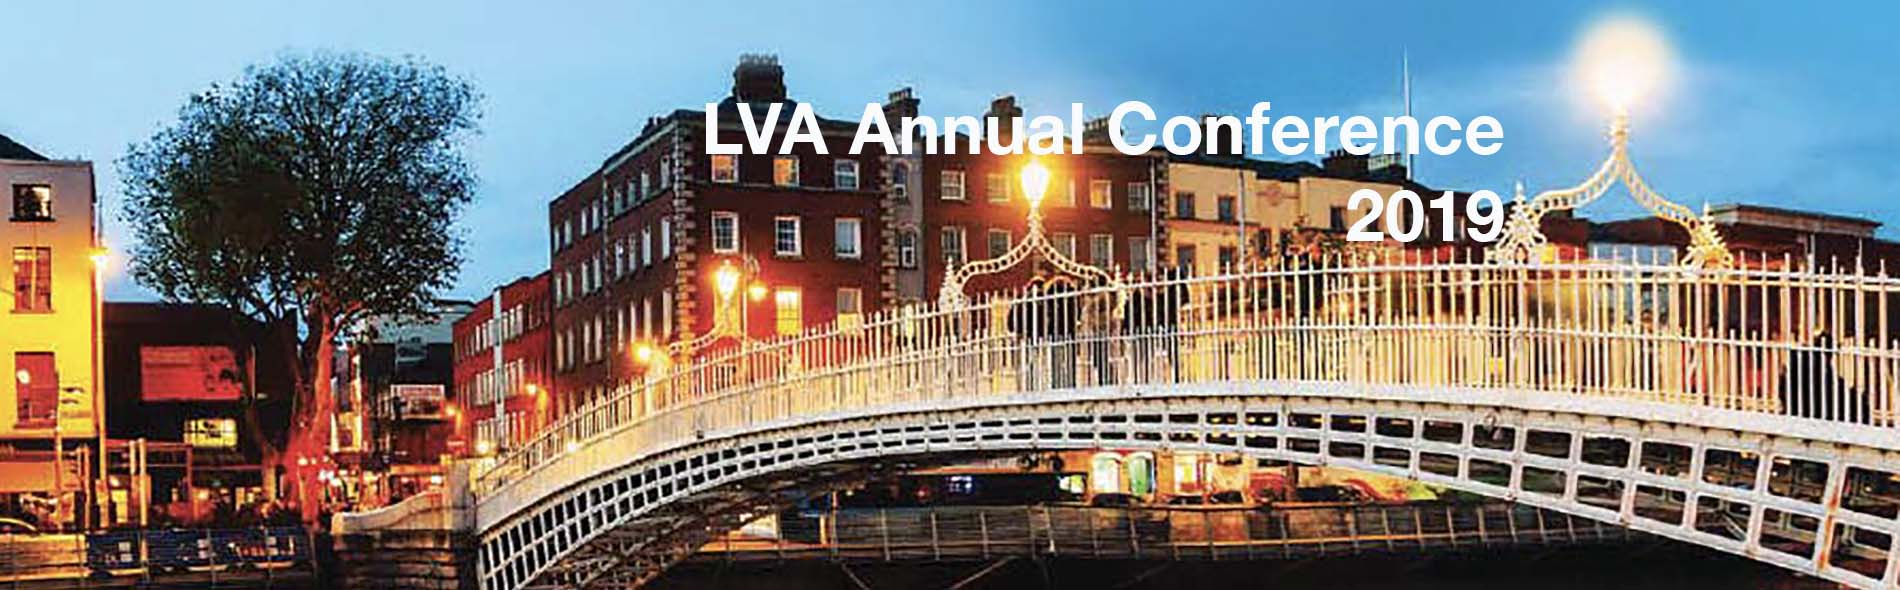 LVA Annual Conference 2019 - Banner image